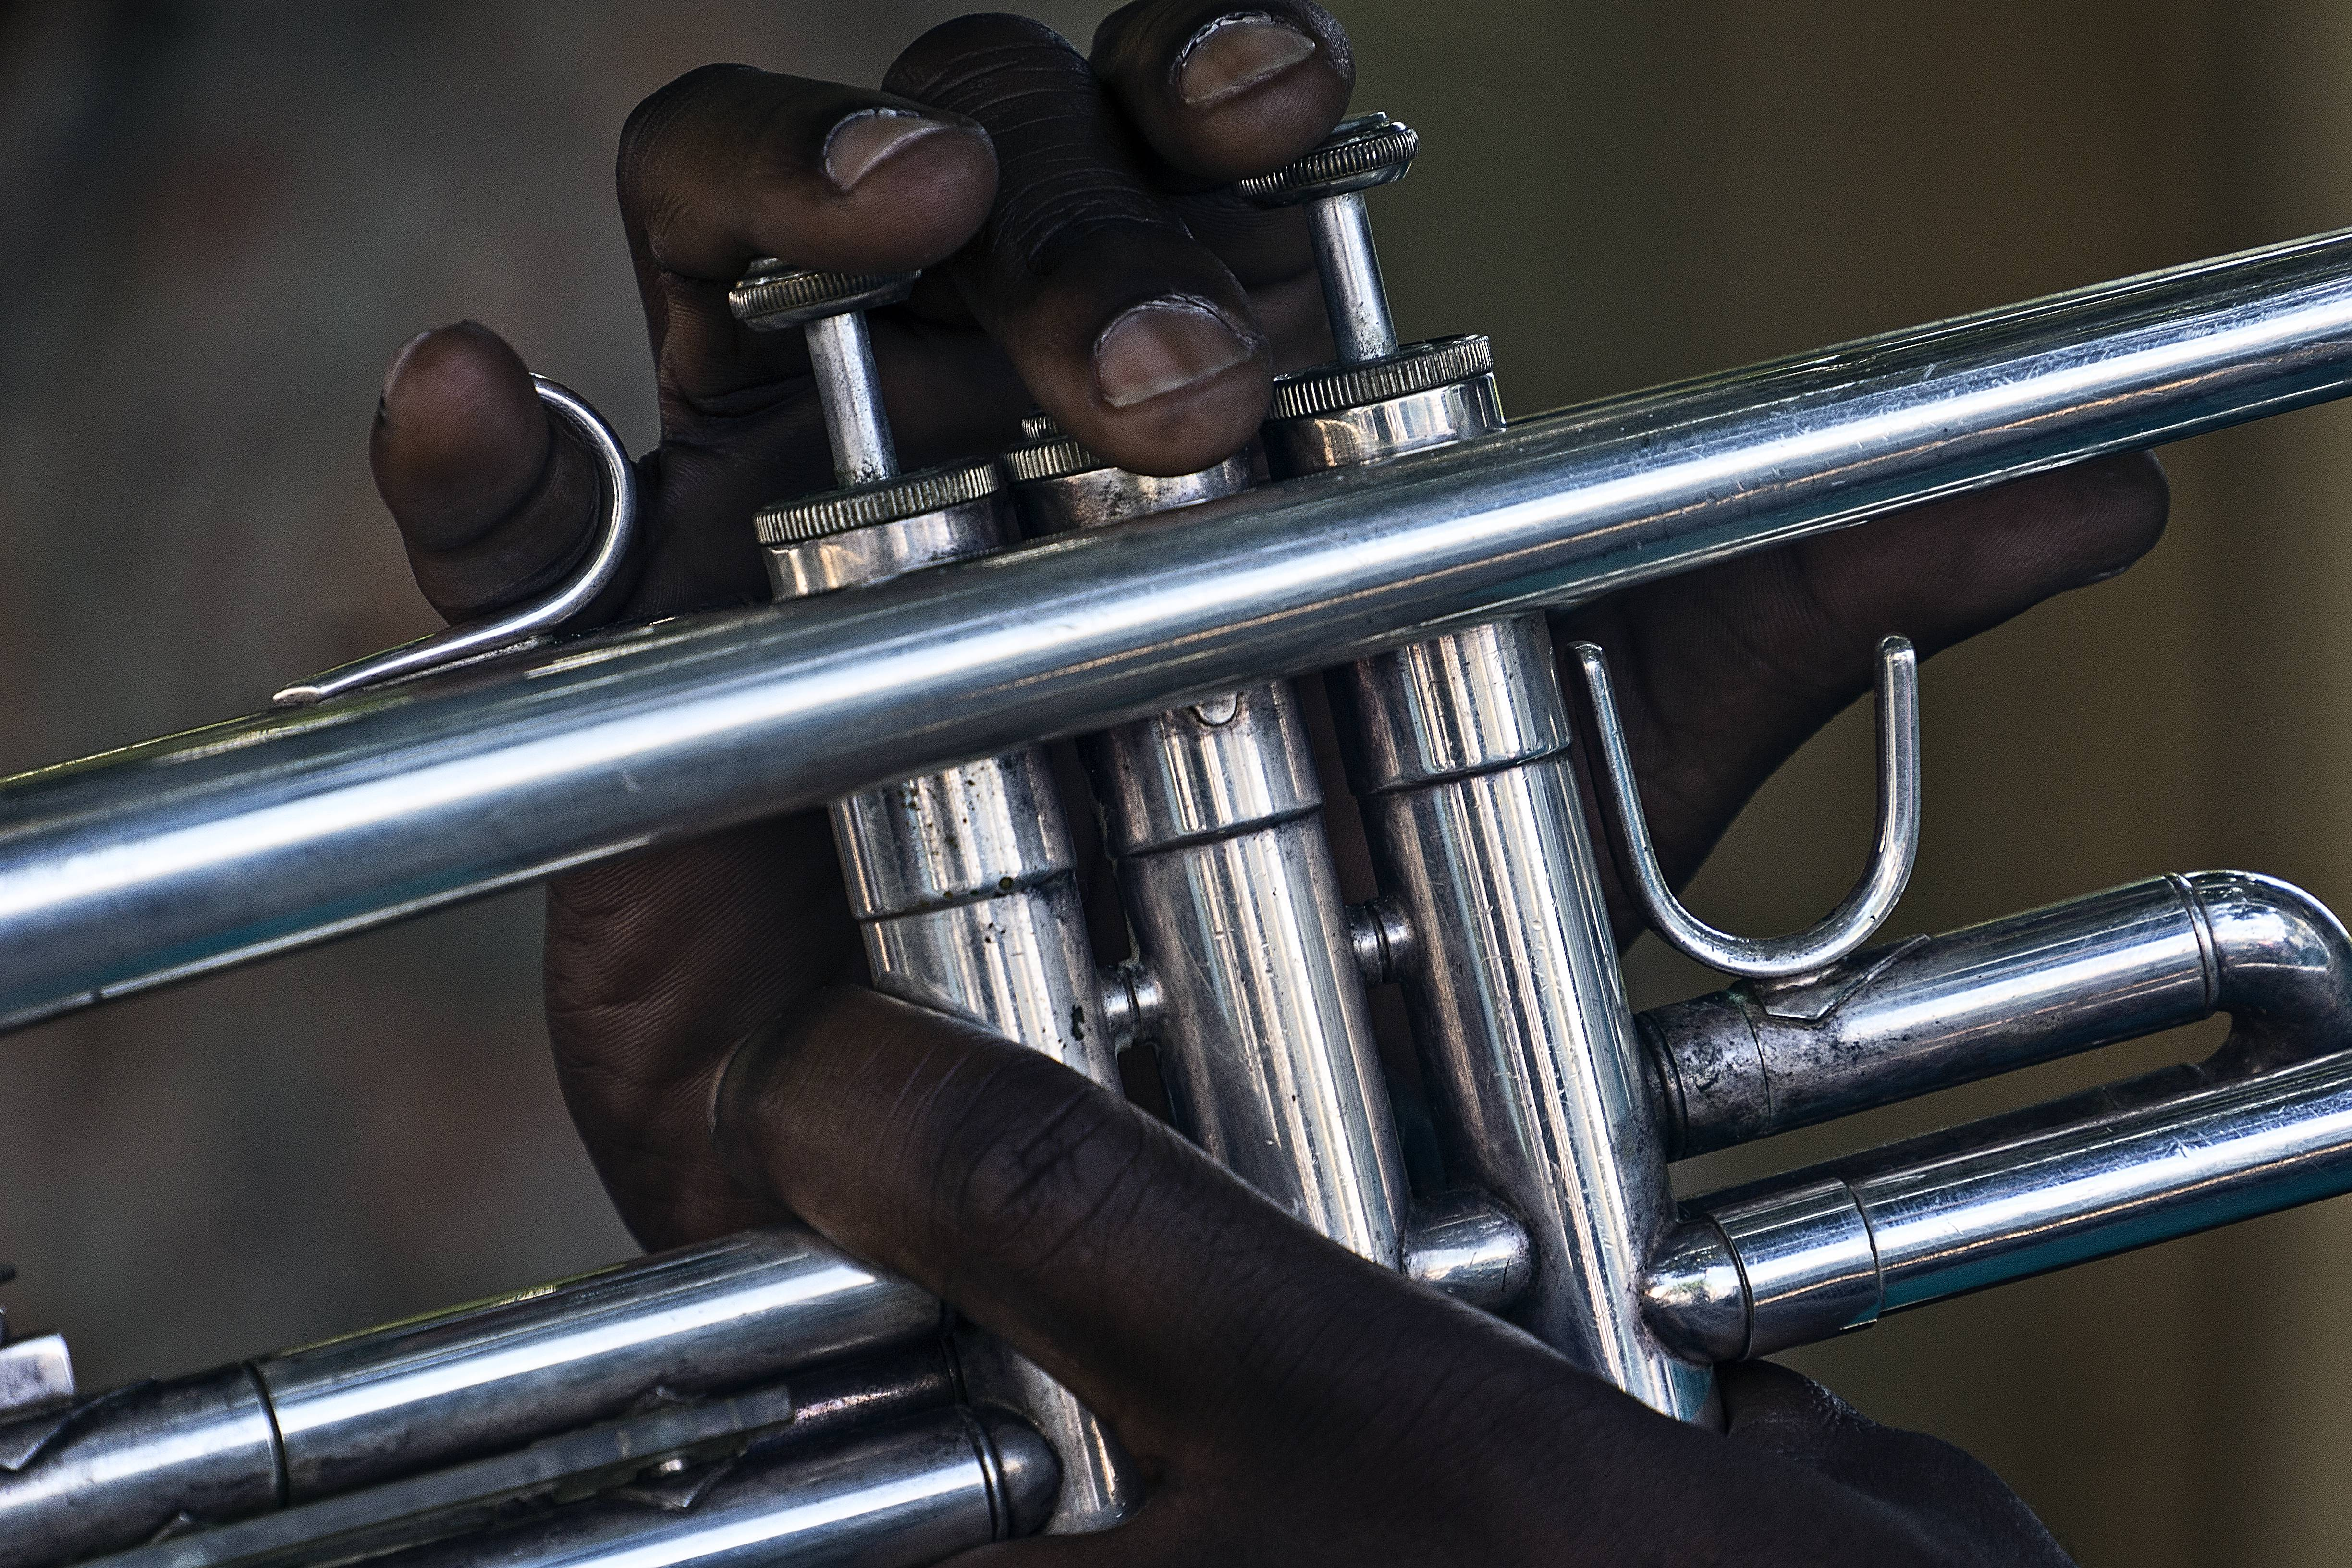 A very tight image of a musician's hand